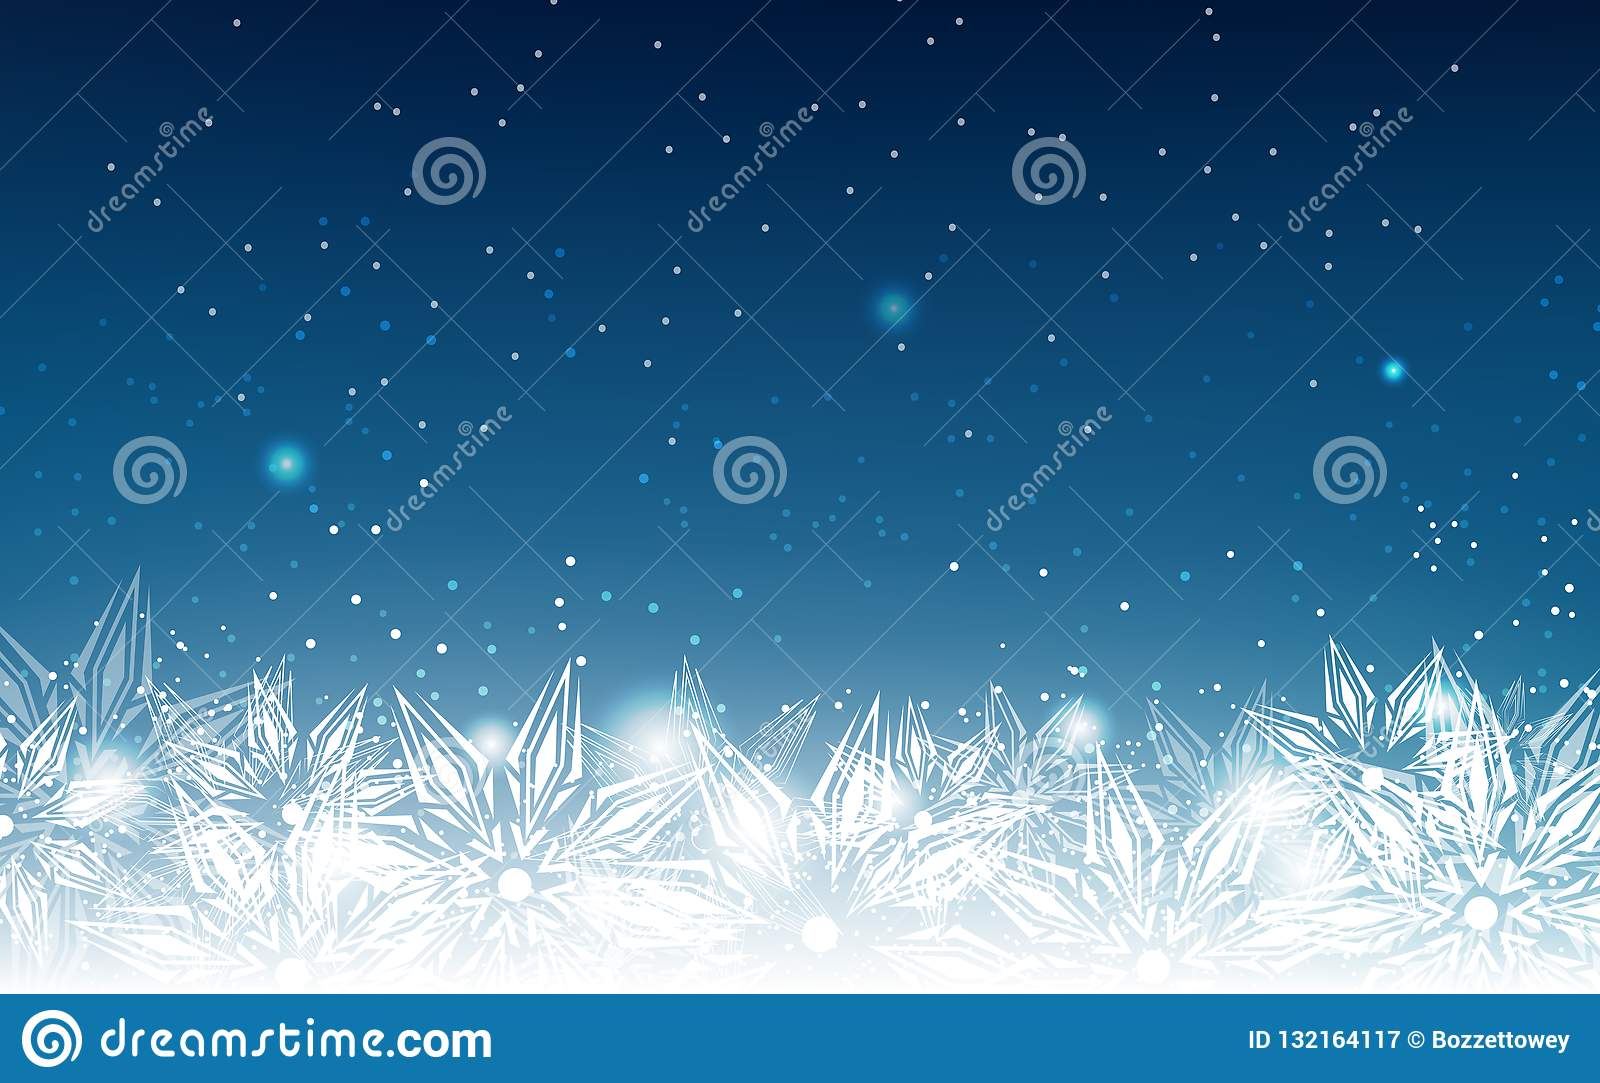 Elegant Christmas Background With Snowflakes Stock Vector: Snowflakes, Winter Holiday, Elegant, Abstract Background